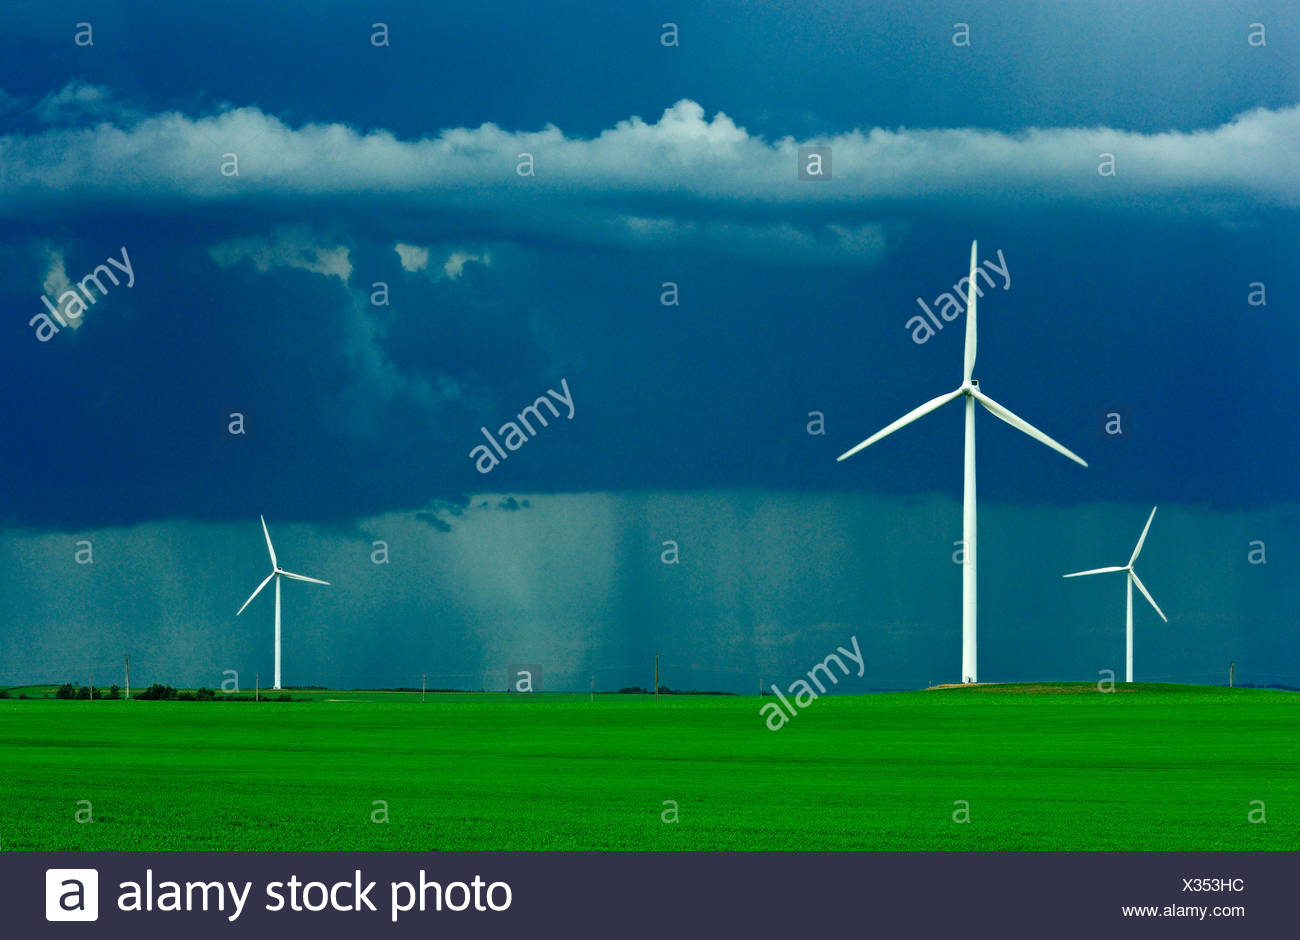 Wind turbines operate in an early growth wheat field with dark storm clouds above and a rain storm in the background / Canada. - Stock Image